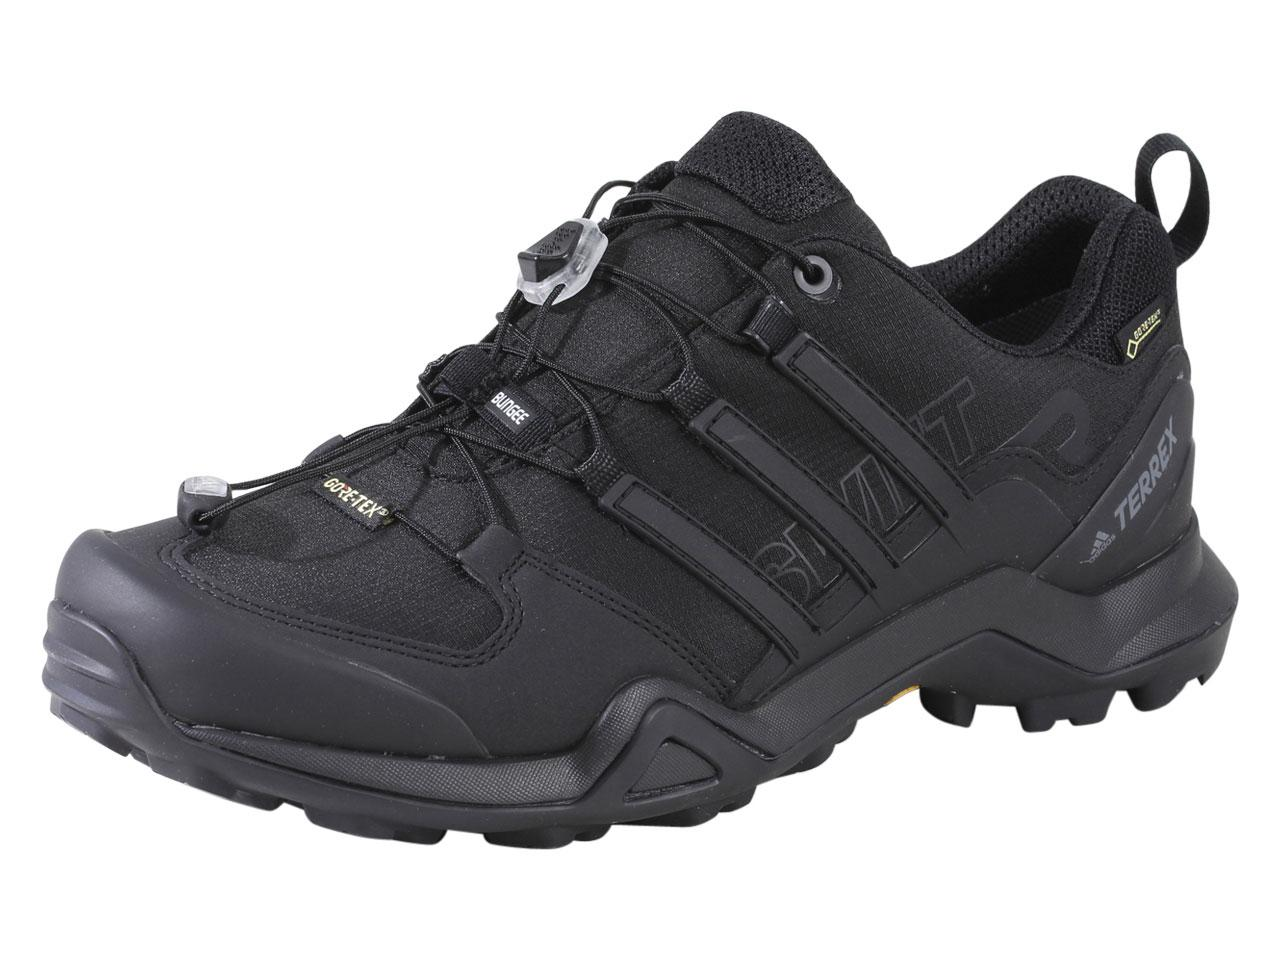 103f33afcbb0a Adidas Men s Terrex-Swift-R2-GTX Hiking Sneakers Shoes by Adidas